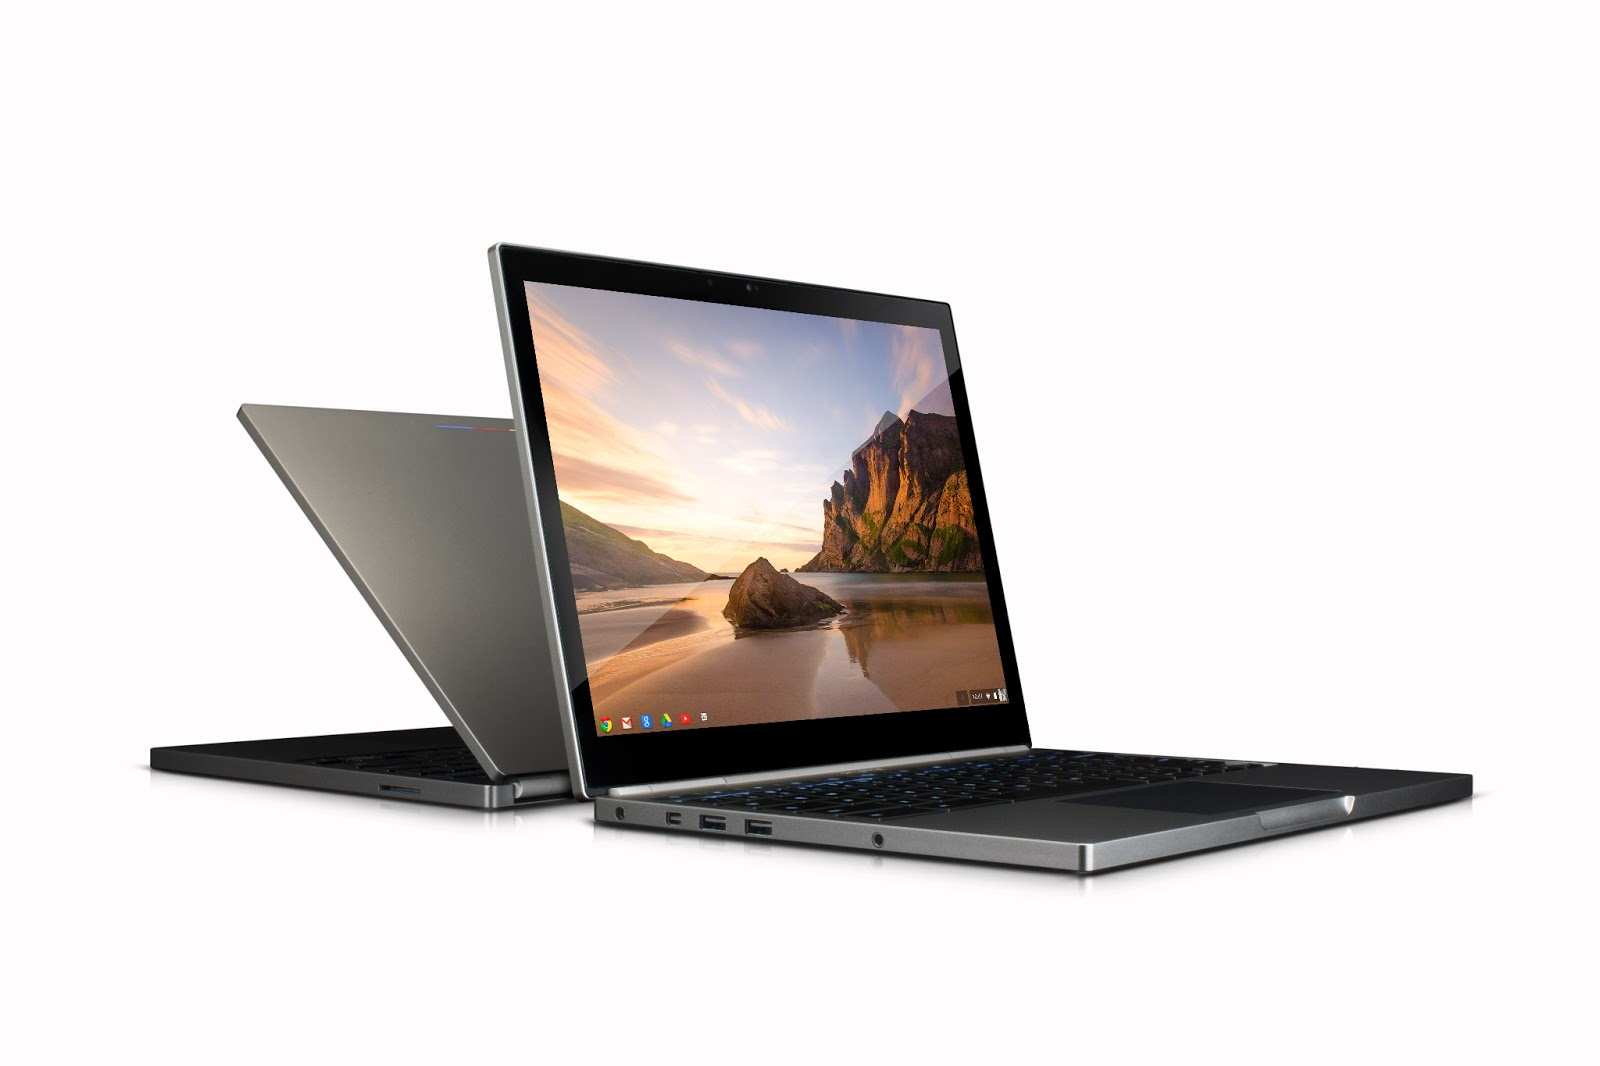 Google Chrome Blog: The Chromebook Pixel, for what's next